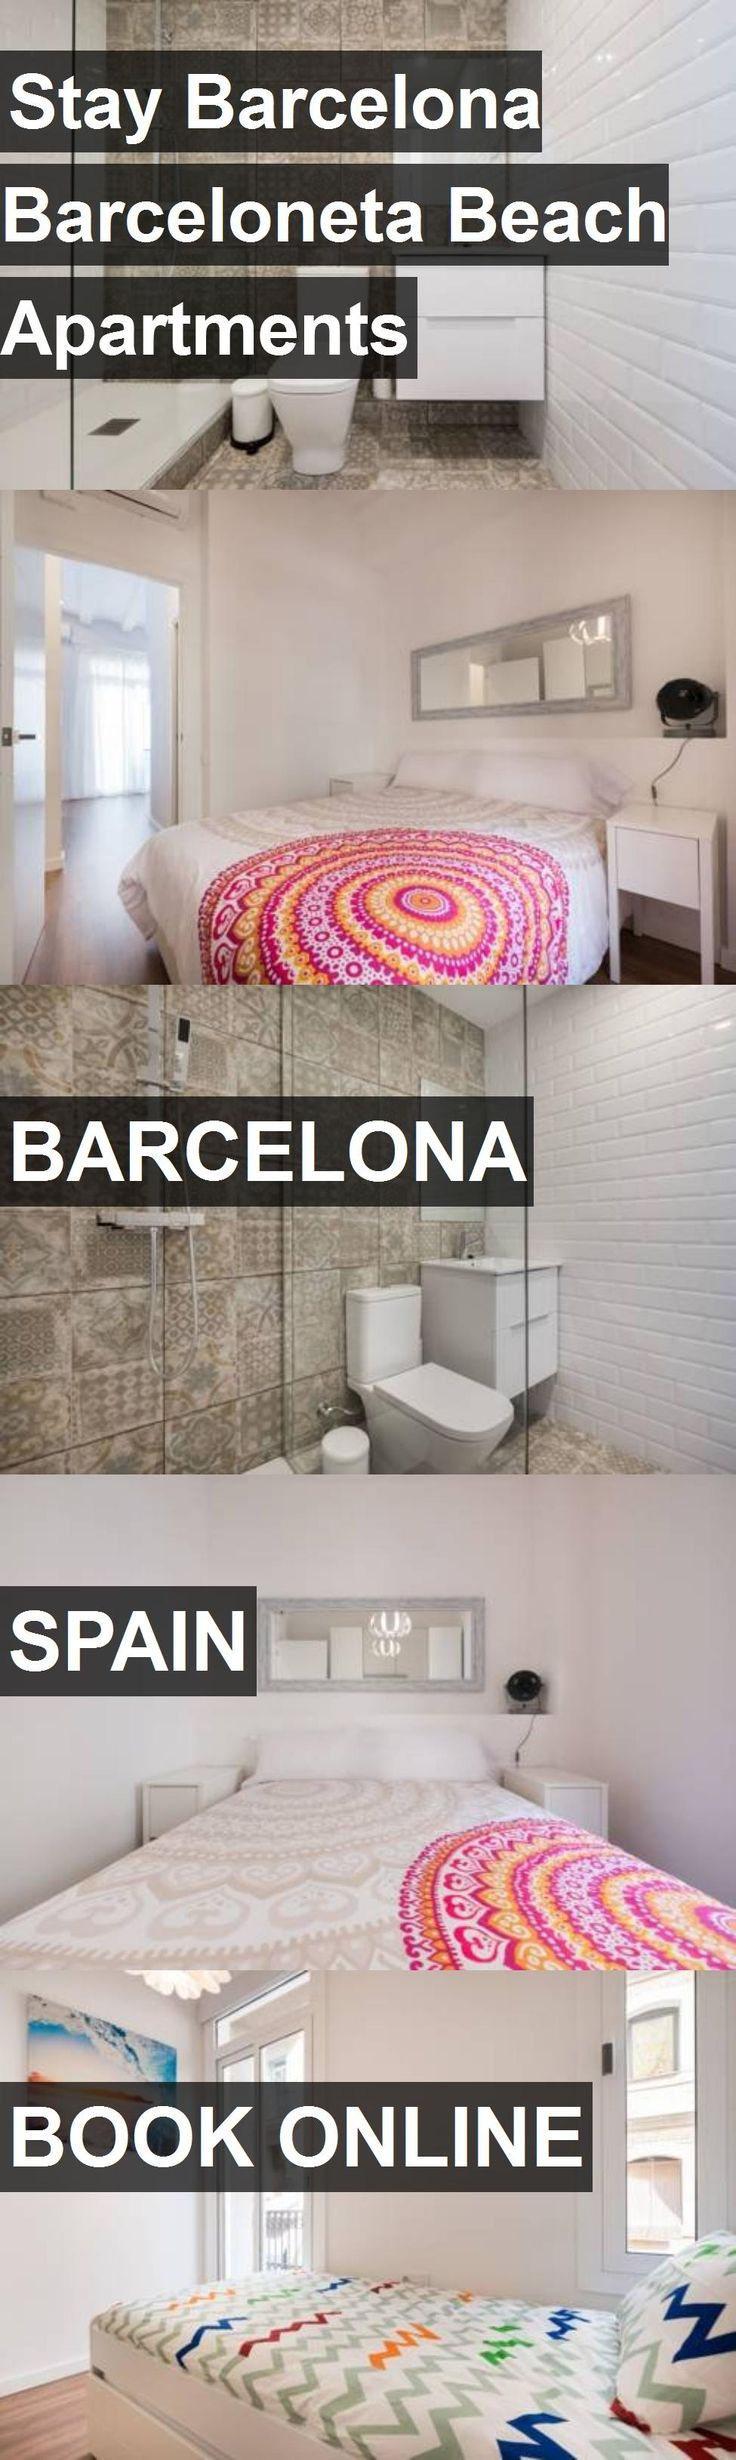 Stay Barcelona Barceloneta Beach Apartments in Barcelona, Spain. For more information, photos, reviews and best prices please follow the link. #Spain #Barcelona #travel #vacation #apartment